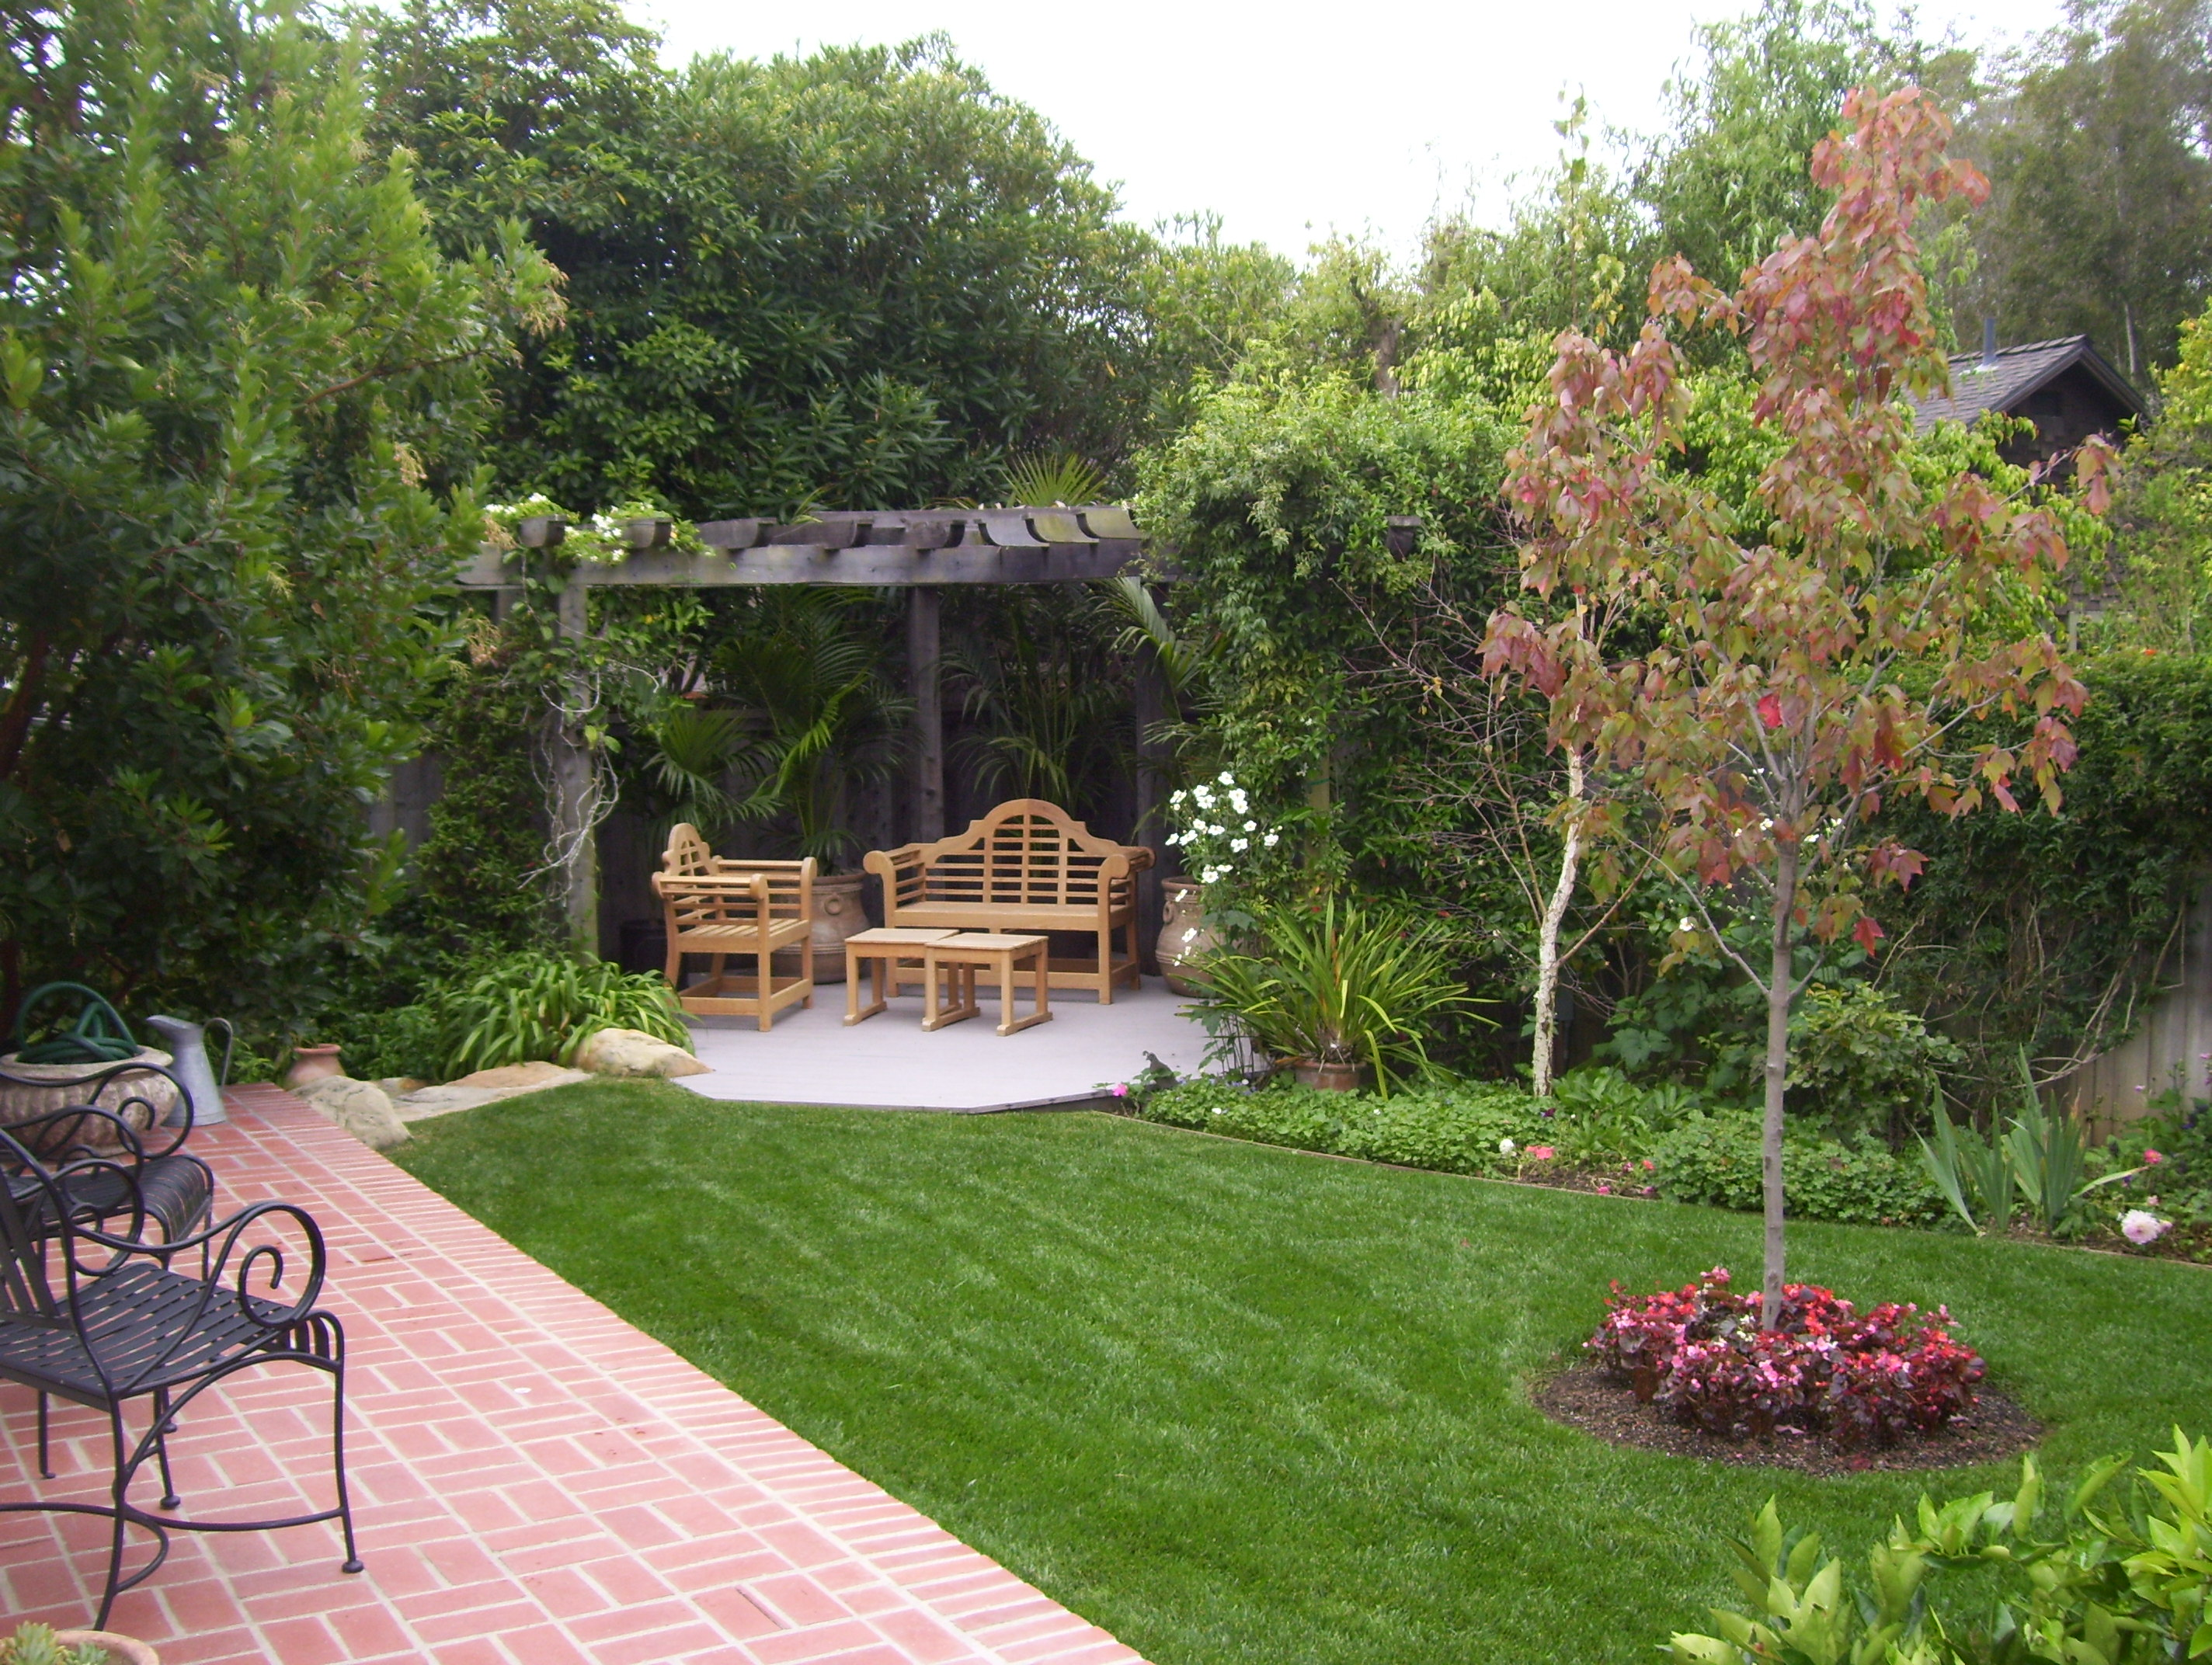 santa barbara lawn and garden maintenenace landscape. Black Bedroom Furniture Sets. Home Design Ideas